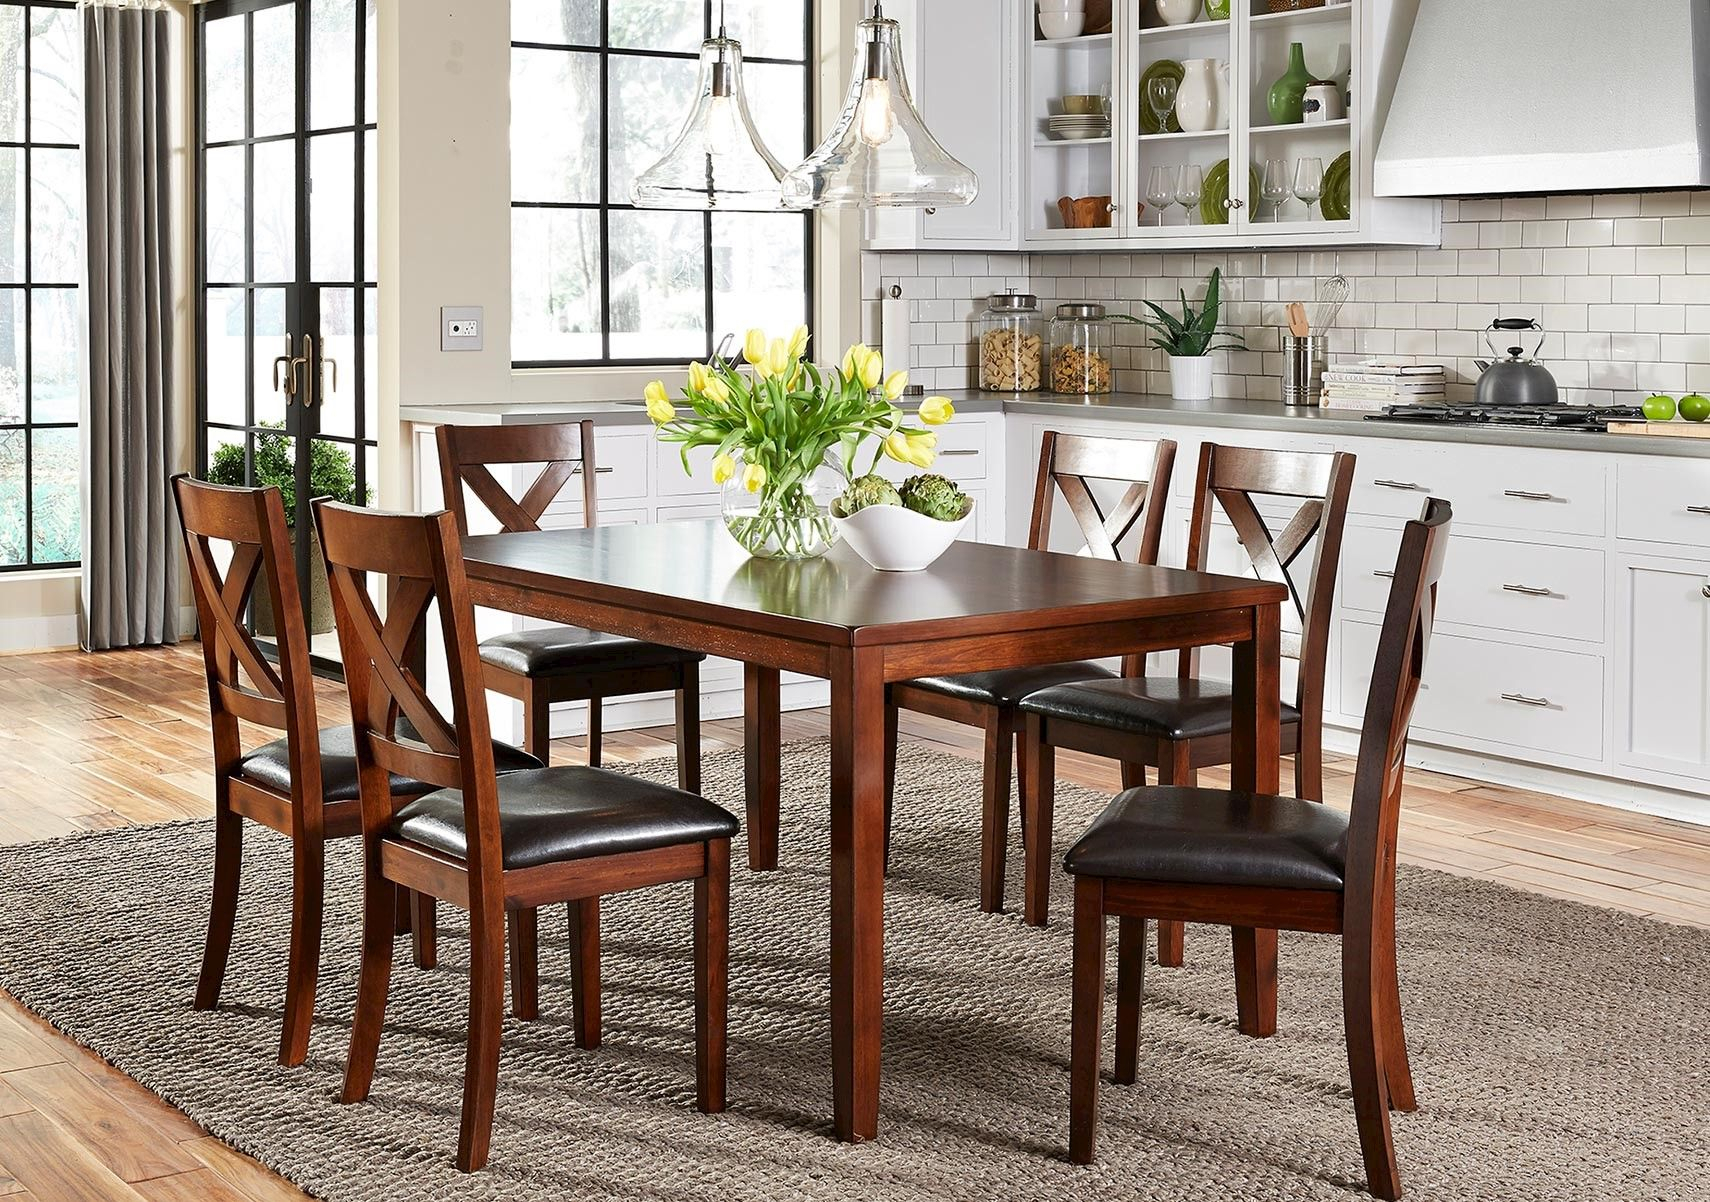 Lacks | Thornton 7 Pc Dining Set | Dining Rooms | Pub Table Sets Intended For Most Up To Date Penelope 3 Piece Counter Height Wood Dining Sets (View 19 of 20)